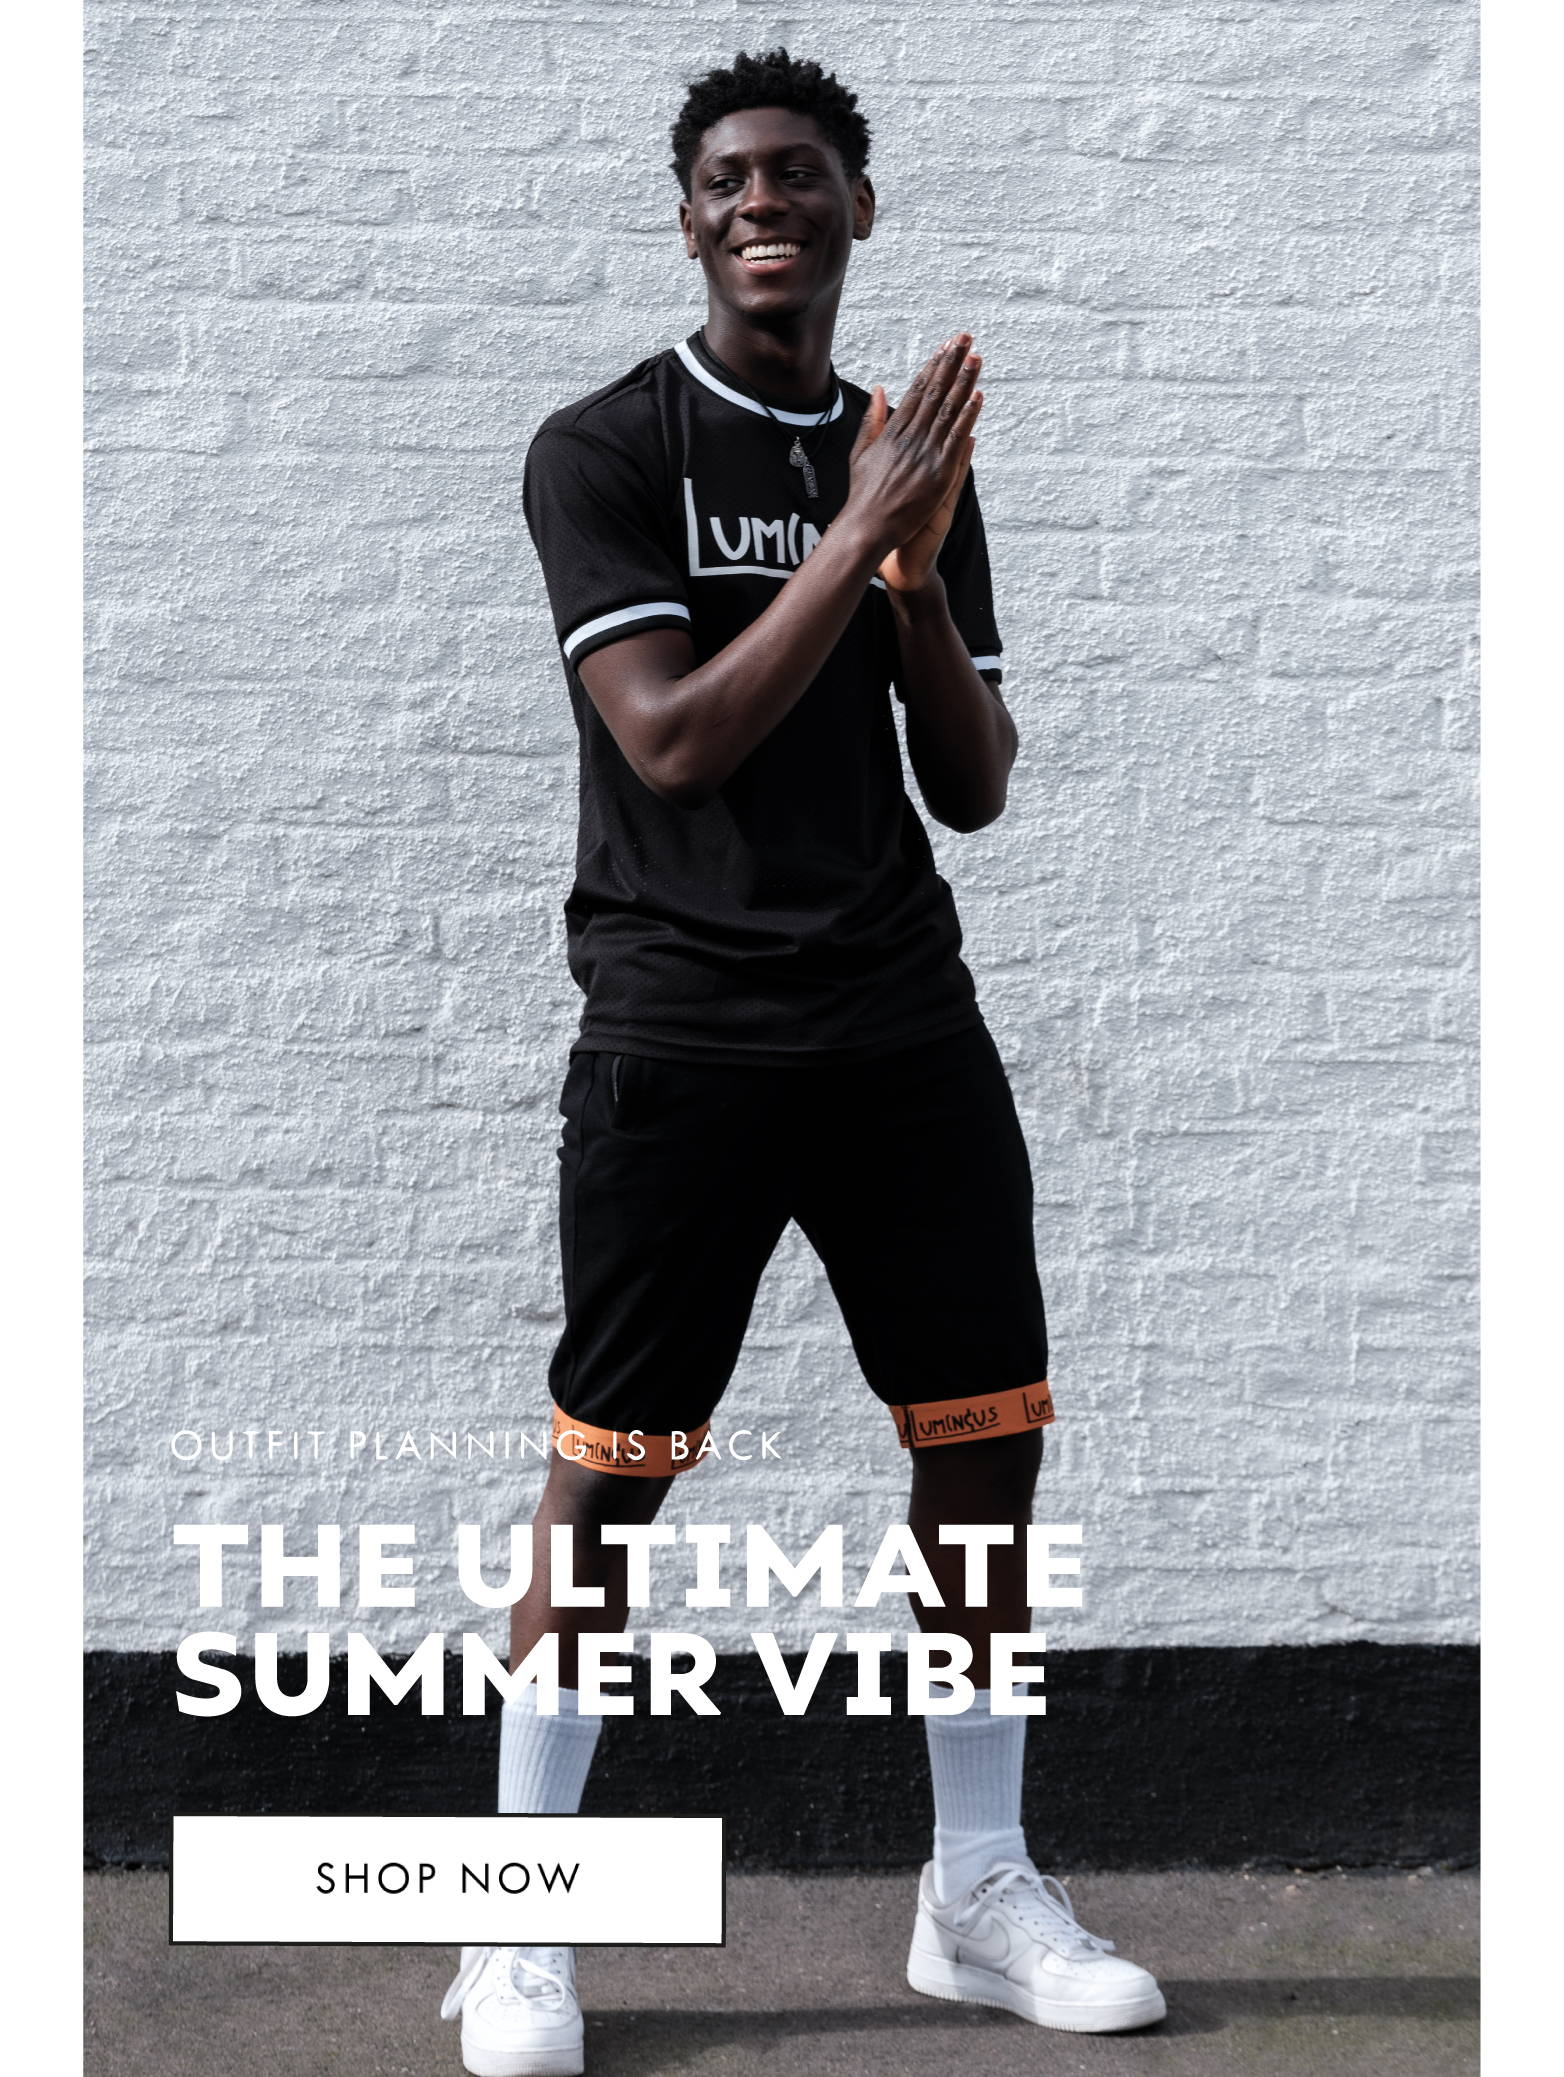 The Ultimate Summer Vibe - Shop Now